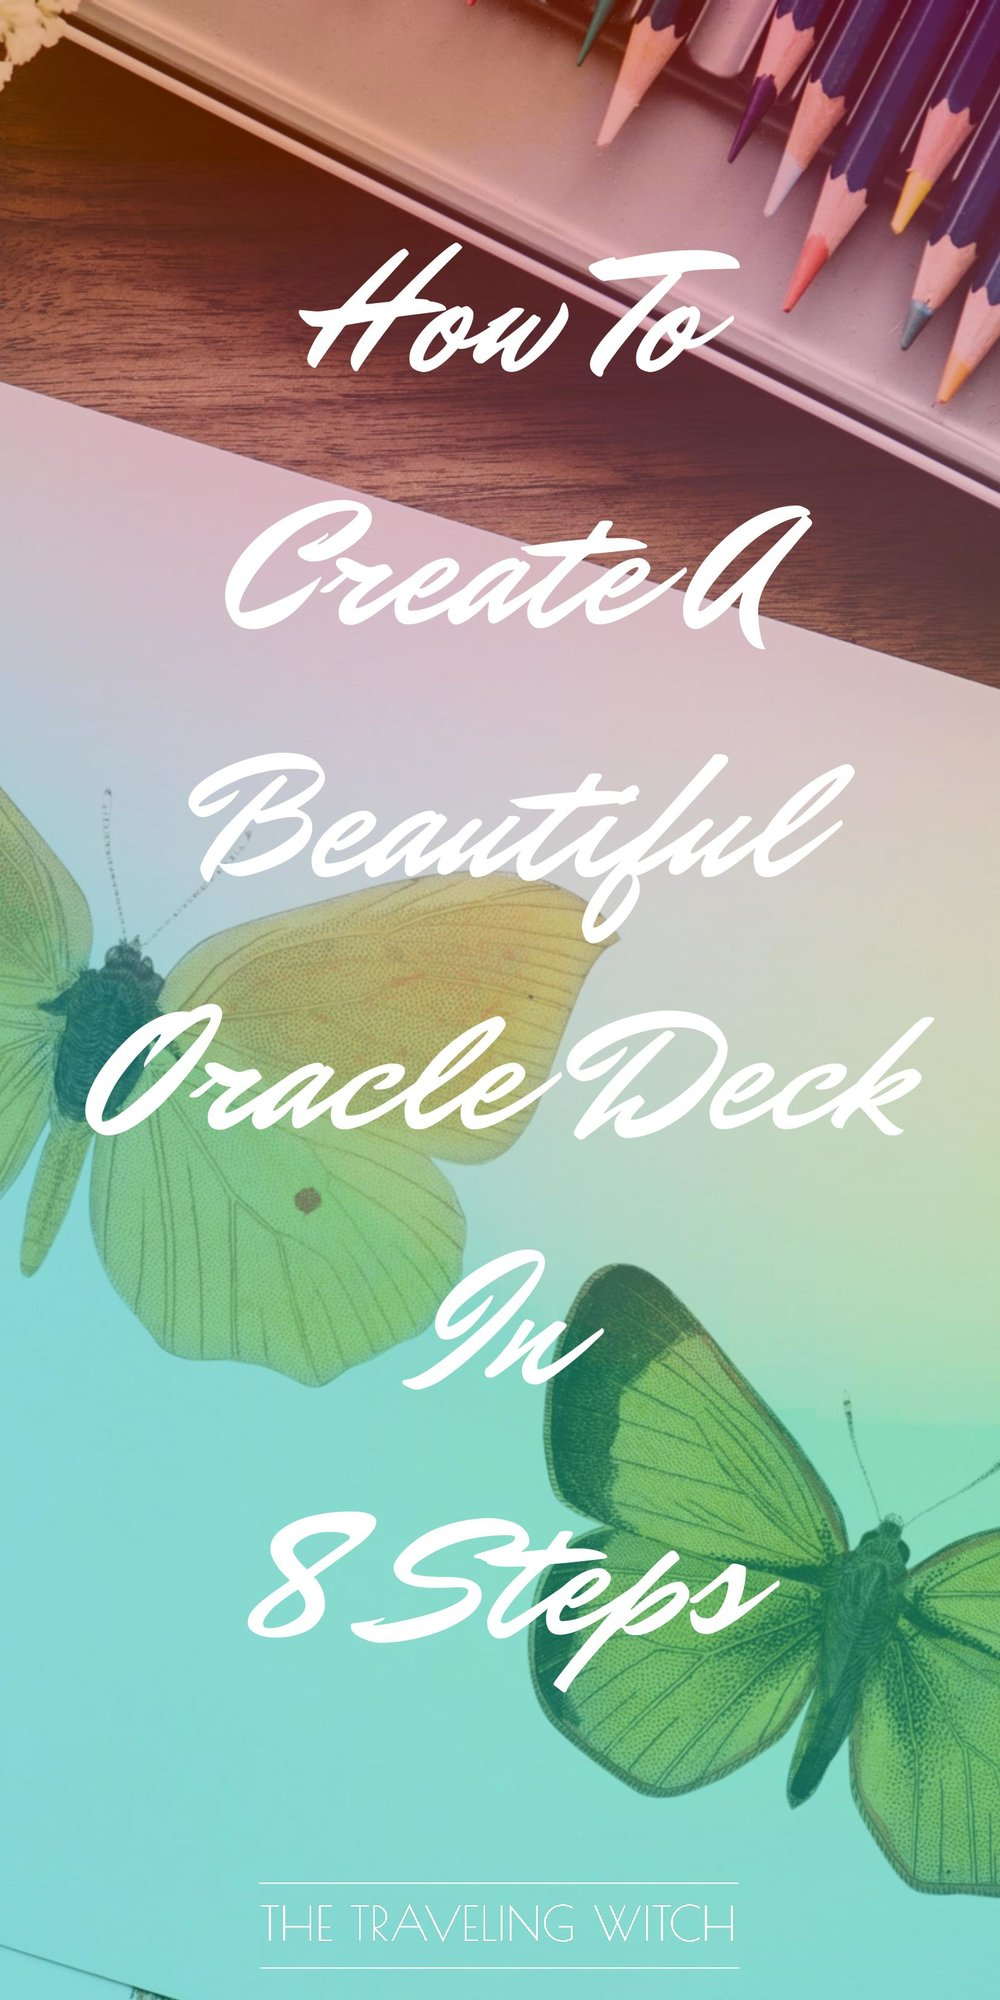 How To Create A Beautiful Oracle Deck In 8 Steps // Witchcraft // Magic // The Traveling Witch